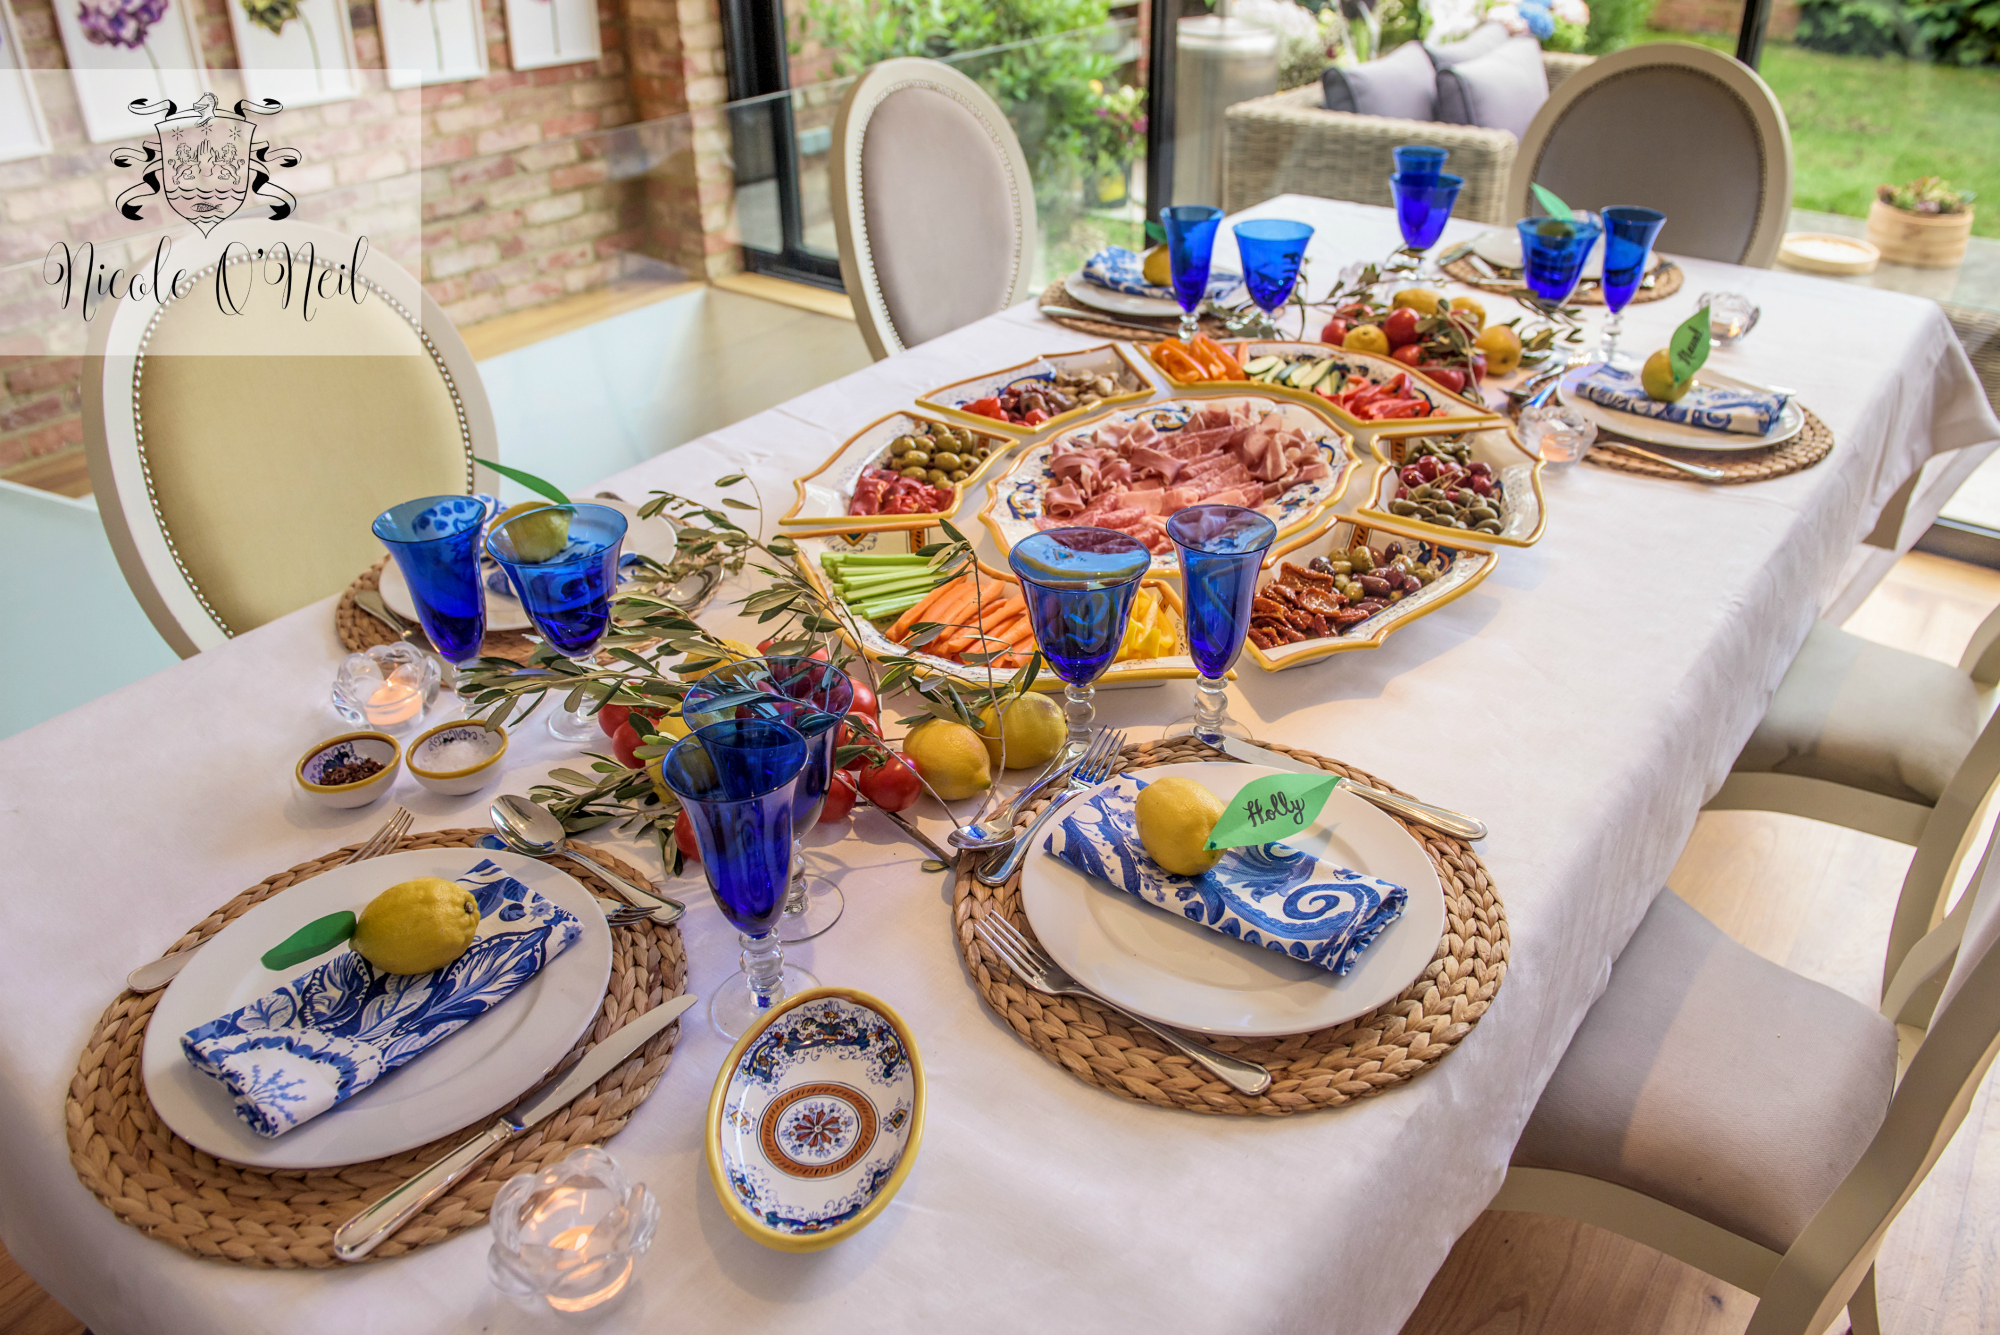 La Dolce Vita Mediterranean Inspired Table Setting for Parties - Lemon, Blue and White Italian Themed Dinner Party Tablescape - Italian or Greek Theme Birthday